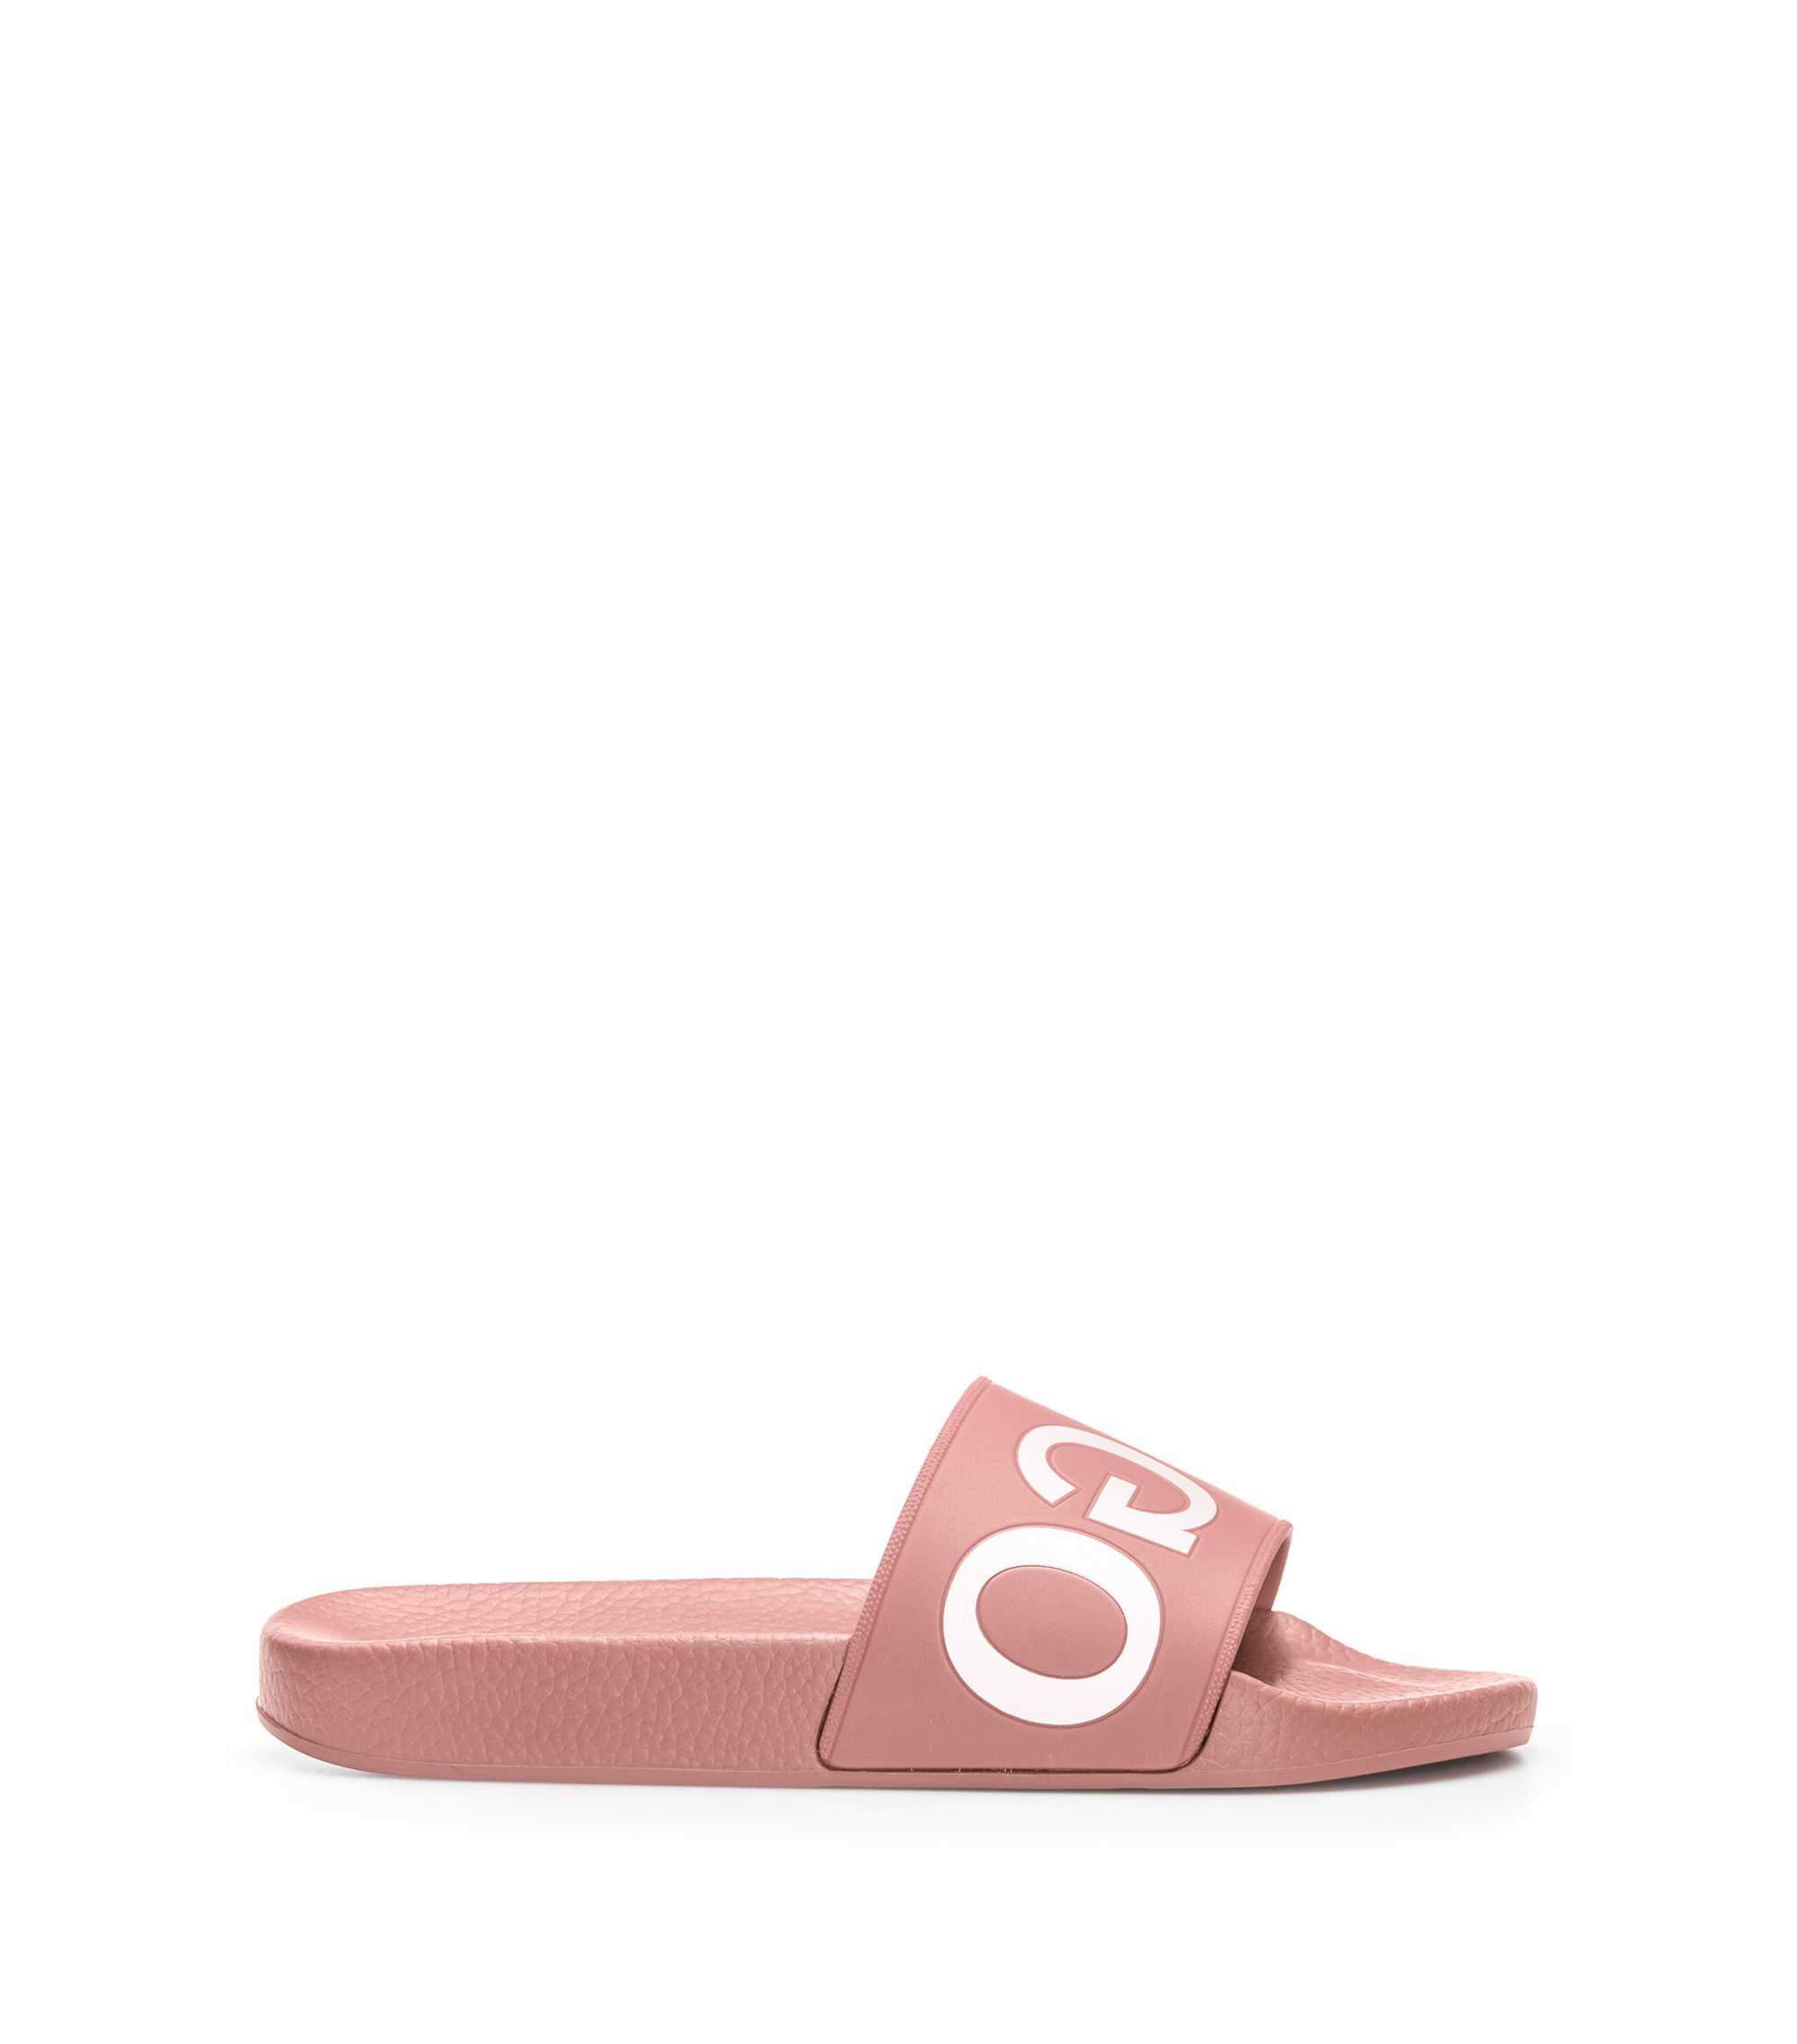 Pool sliders with reverse logo, Dark pink